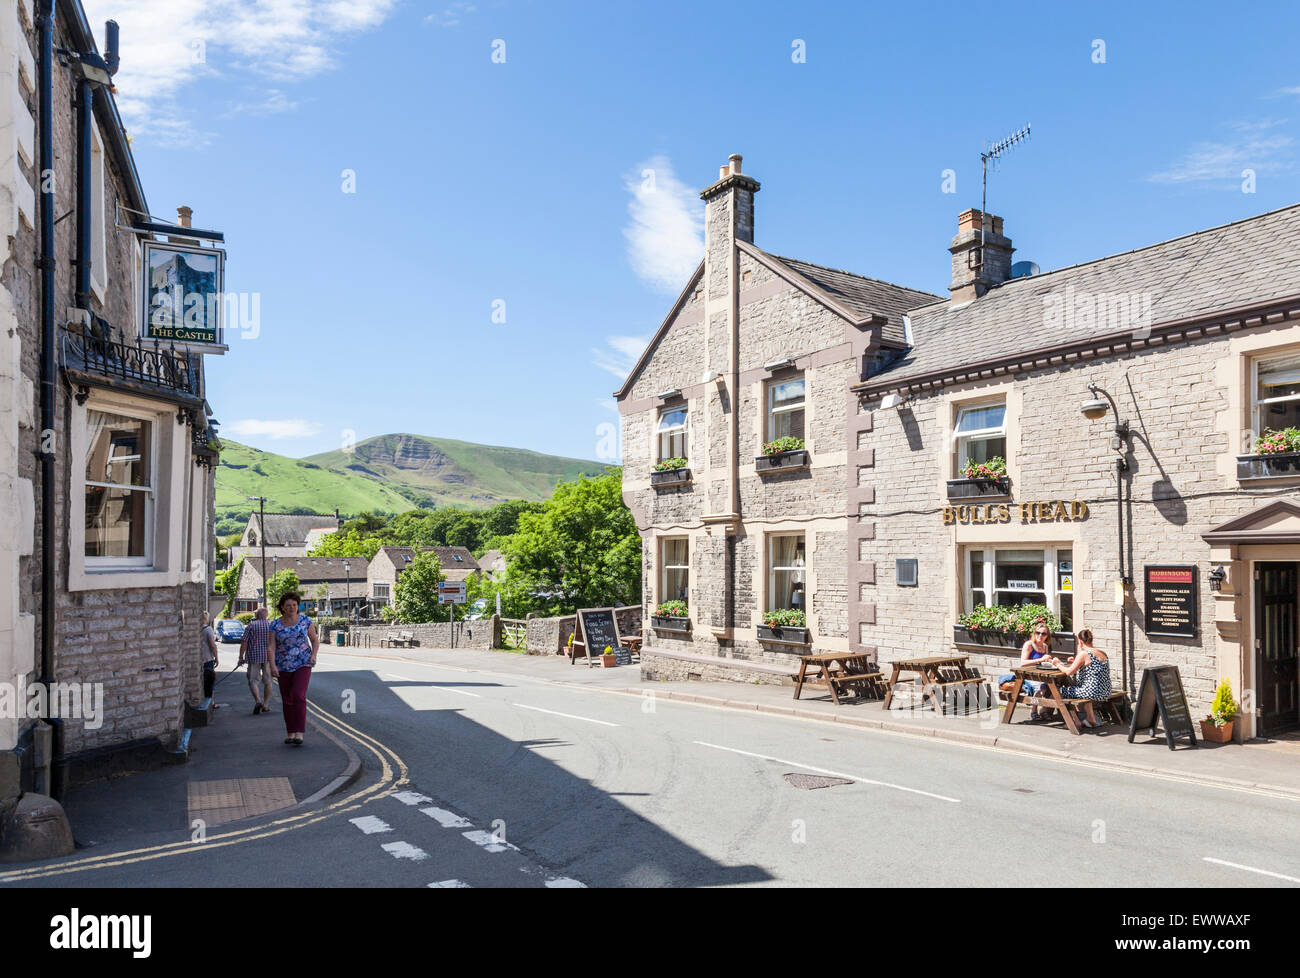 The Castle and The Bull's Head pubs on opposite sides of the road, Castleton, Derbyshire, Peak District National Stock Photo